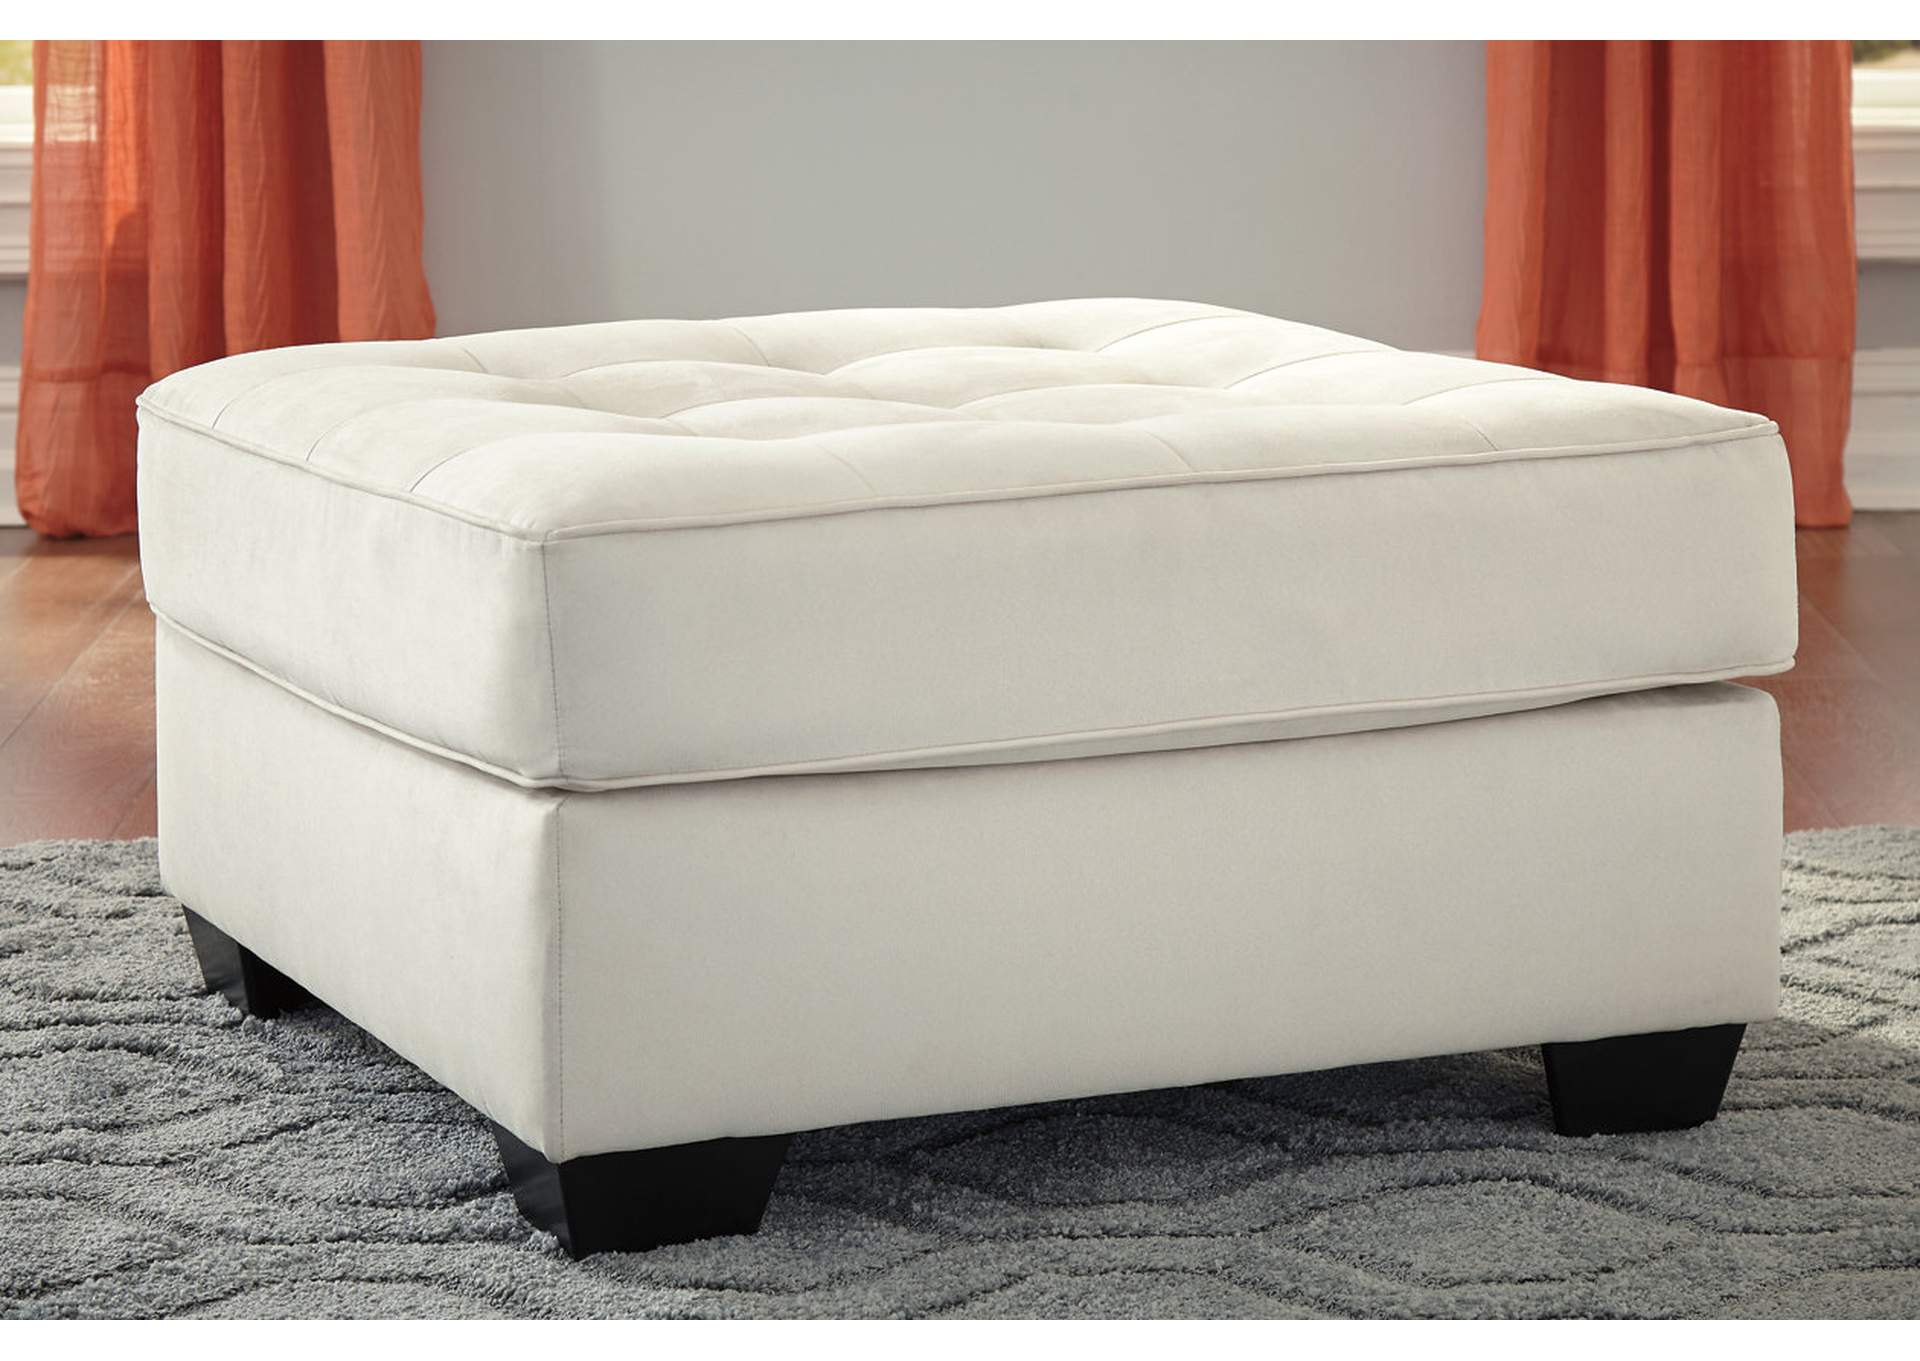 Filone Ivory Oversized Accent Ottoman,Signature Design By Ashley